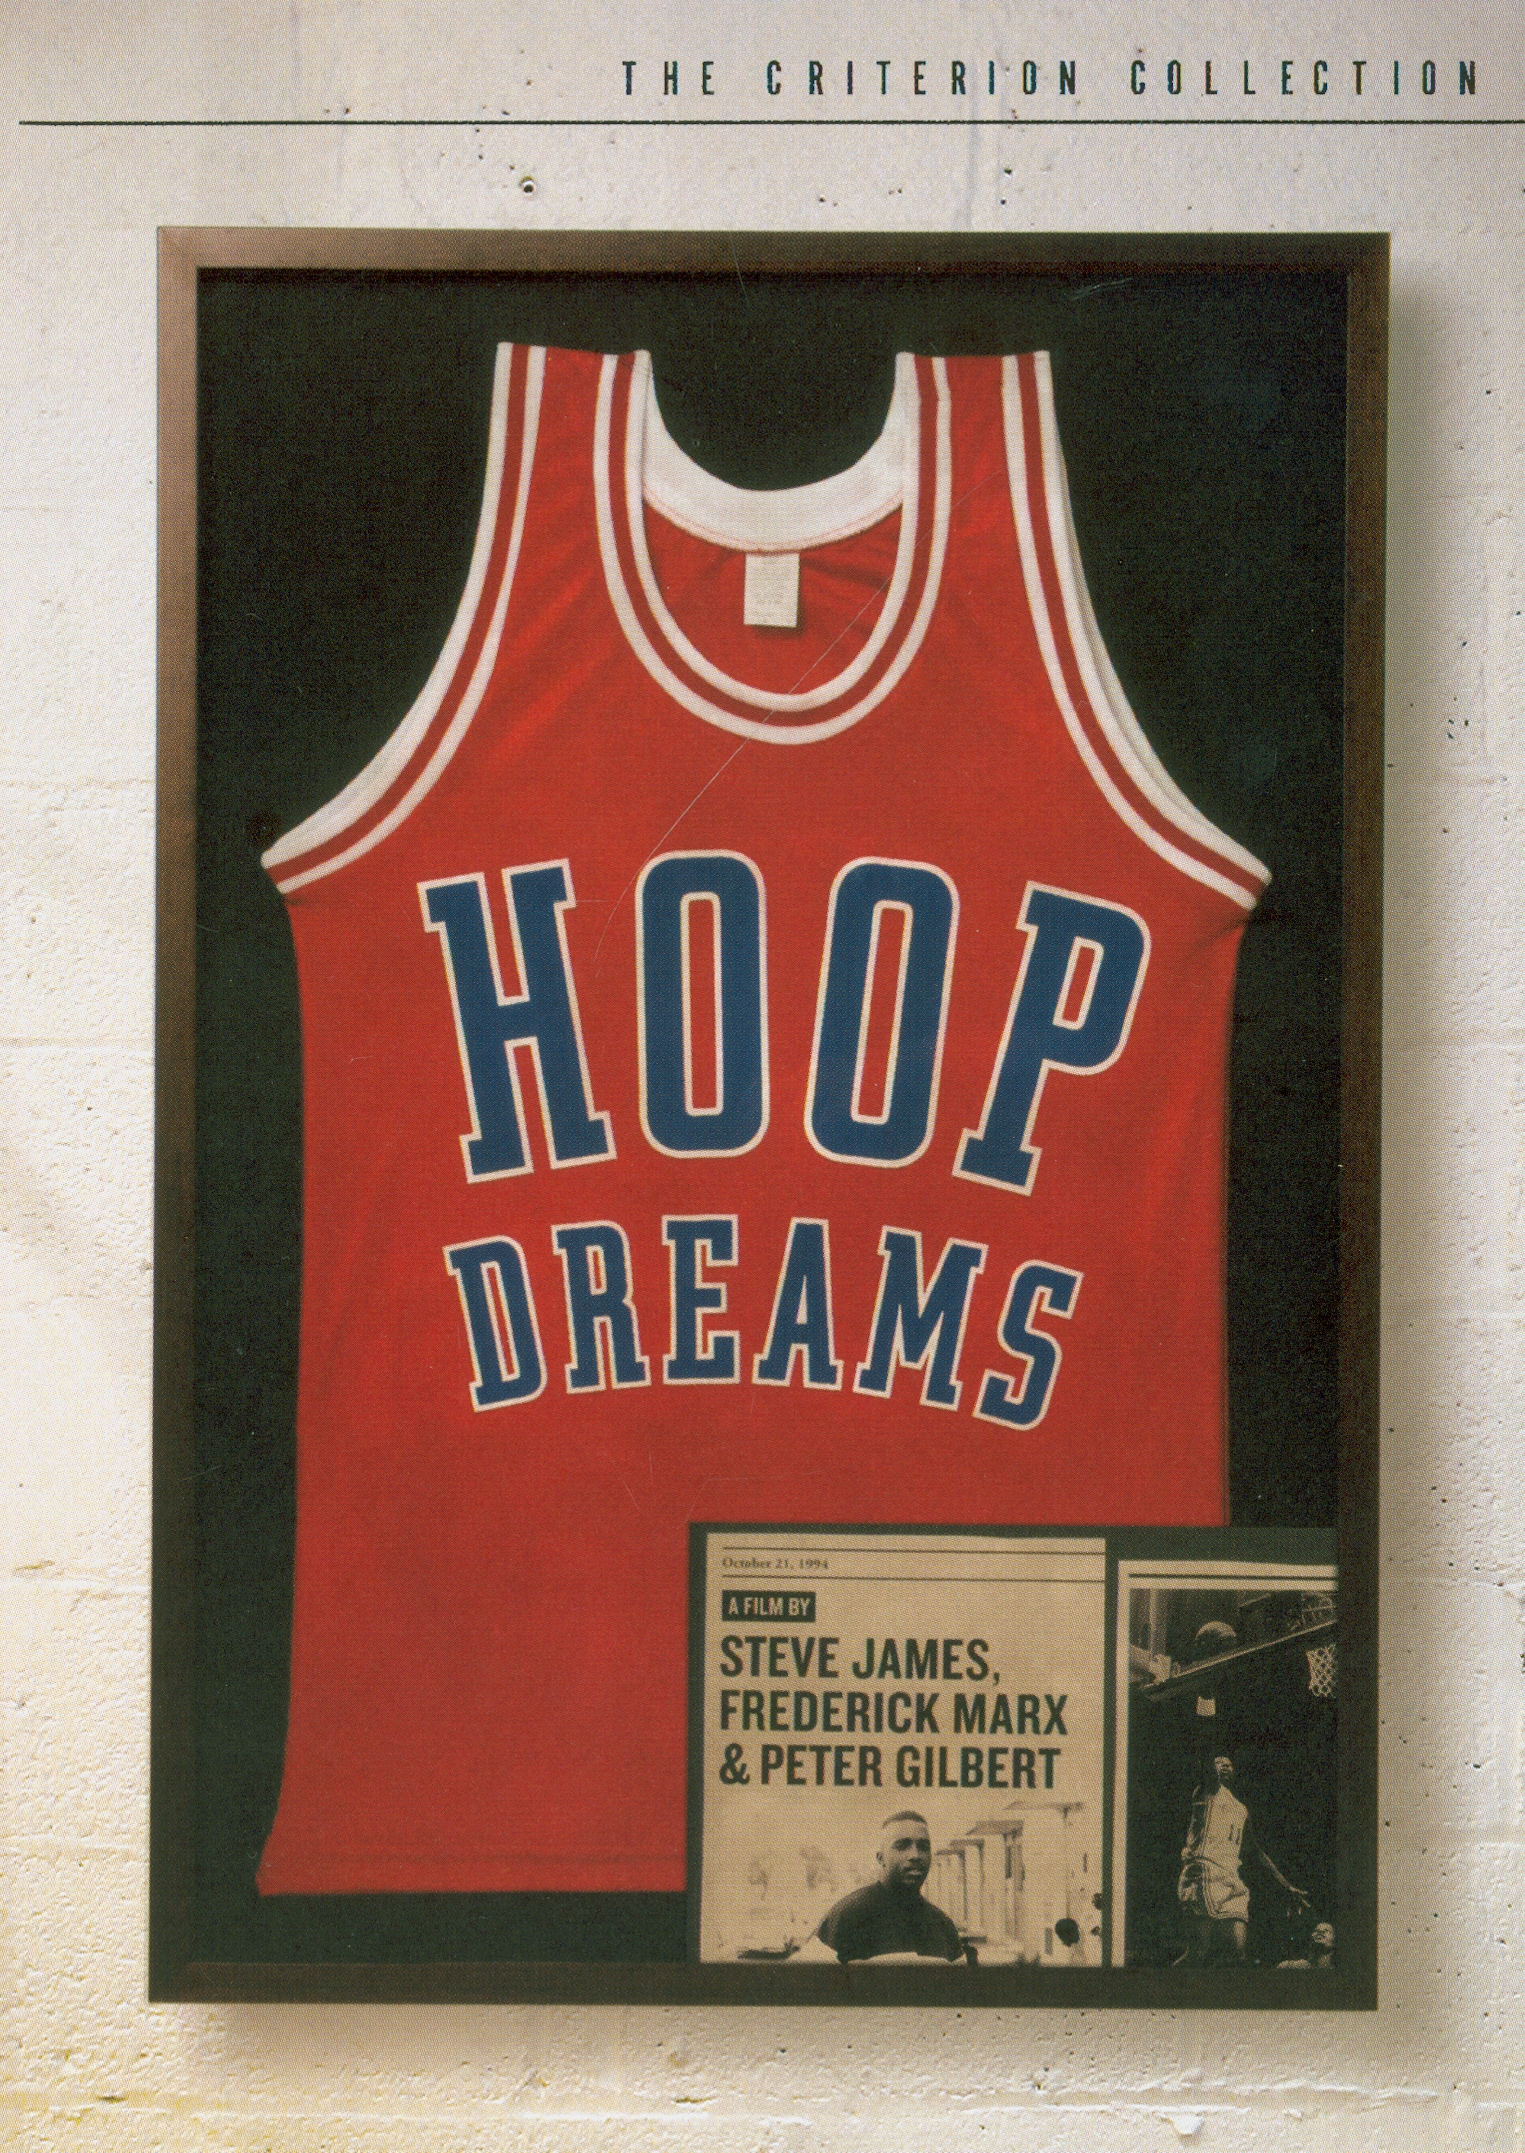 Hoop dreams[videorecording] /a film by Steve James, Fred Marx, Peter Gilbert ; a production of Kartemquin Films and KTCA Public Television, Saint Paul, Minneapolis; produced by Frederick Marx, Steve James, Peter Gilbert ;directed by Steve James ; co-producer, Gordon Quinn ;executive producers, Gordon Quinn, Catherine Allan||Criterion collection ;289